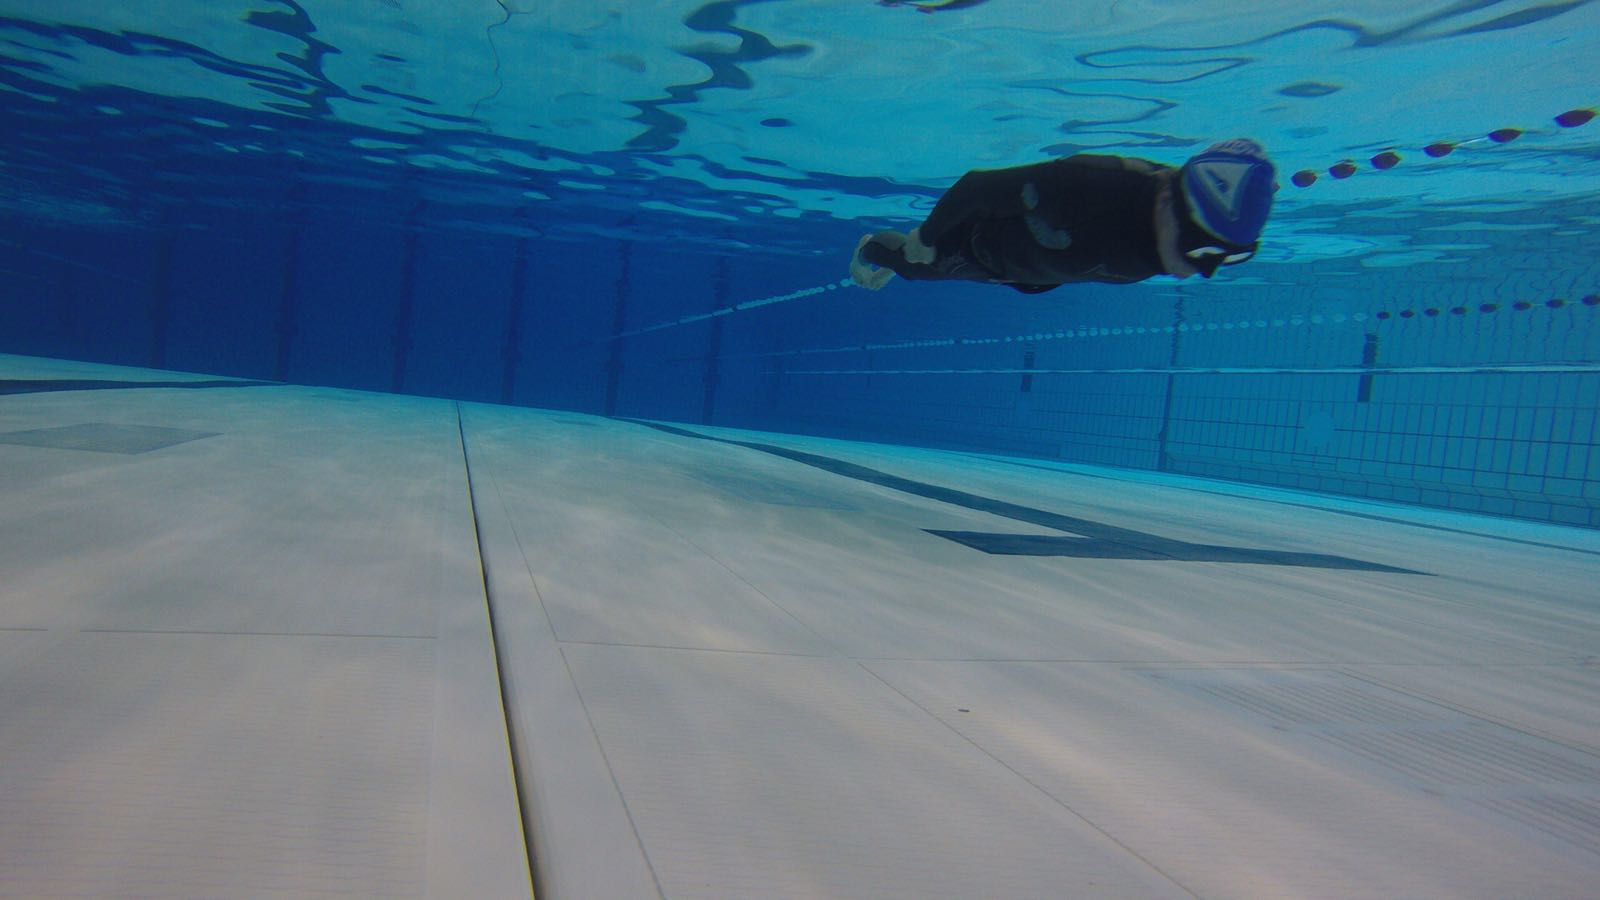 No Fins Specialty freediving